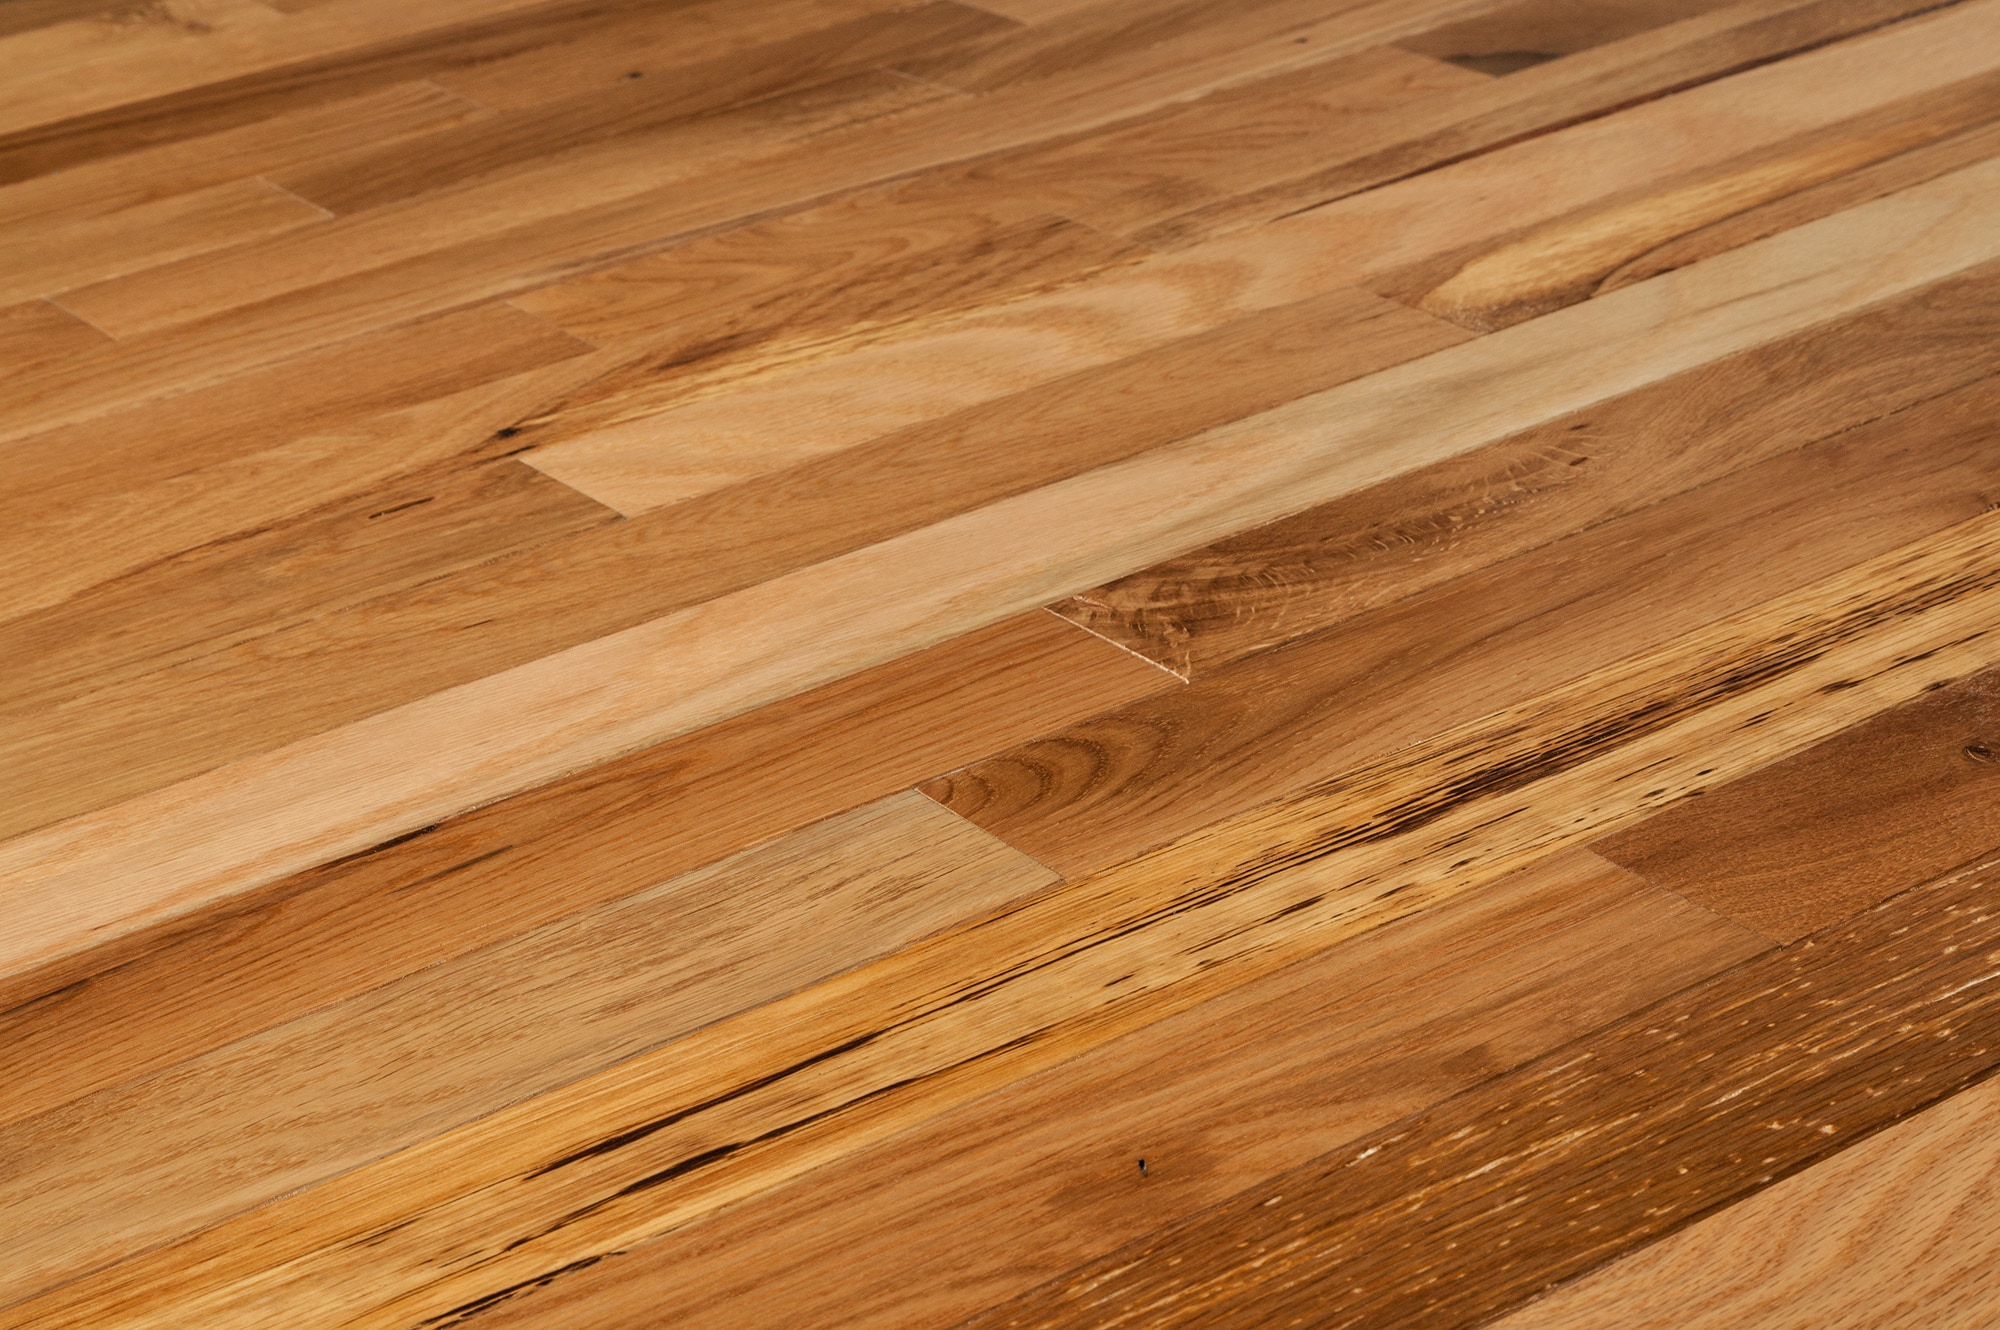 Jasper hardwood prefinished oak collection natural oak for Wood flooring natural